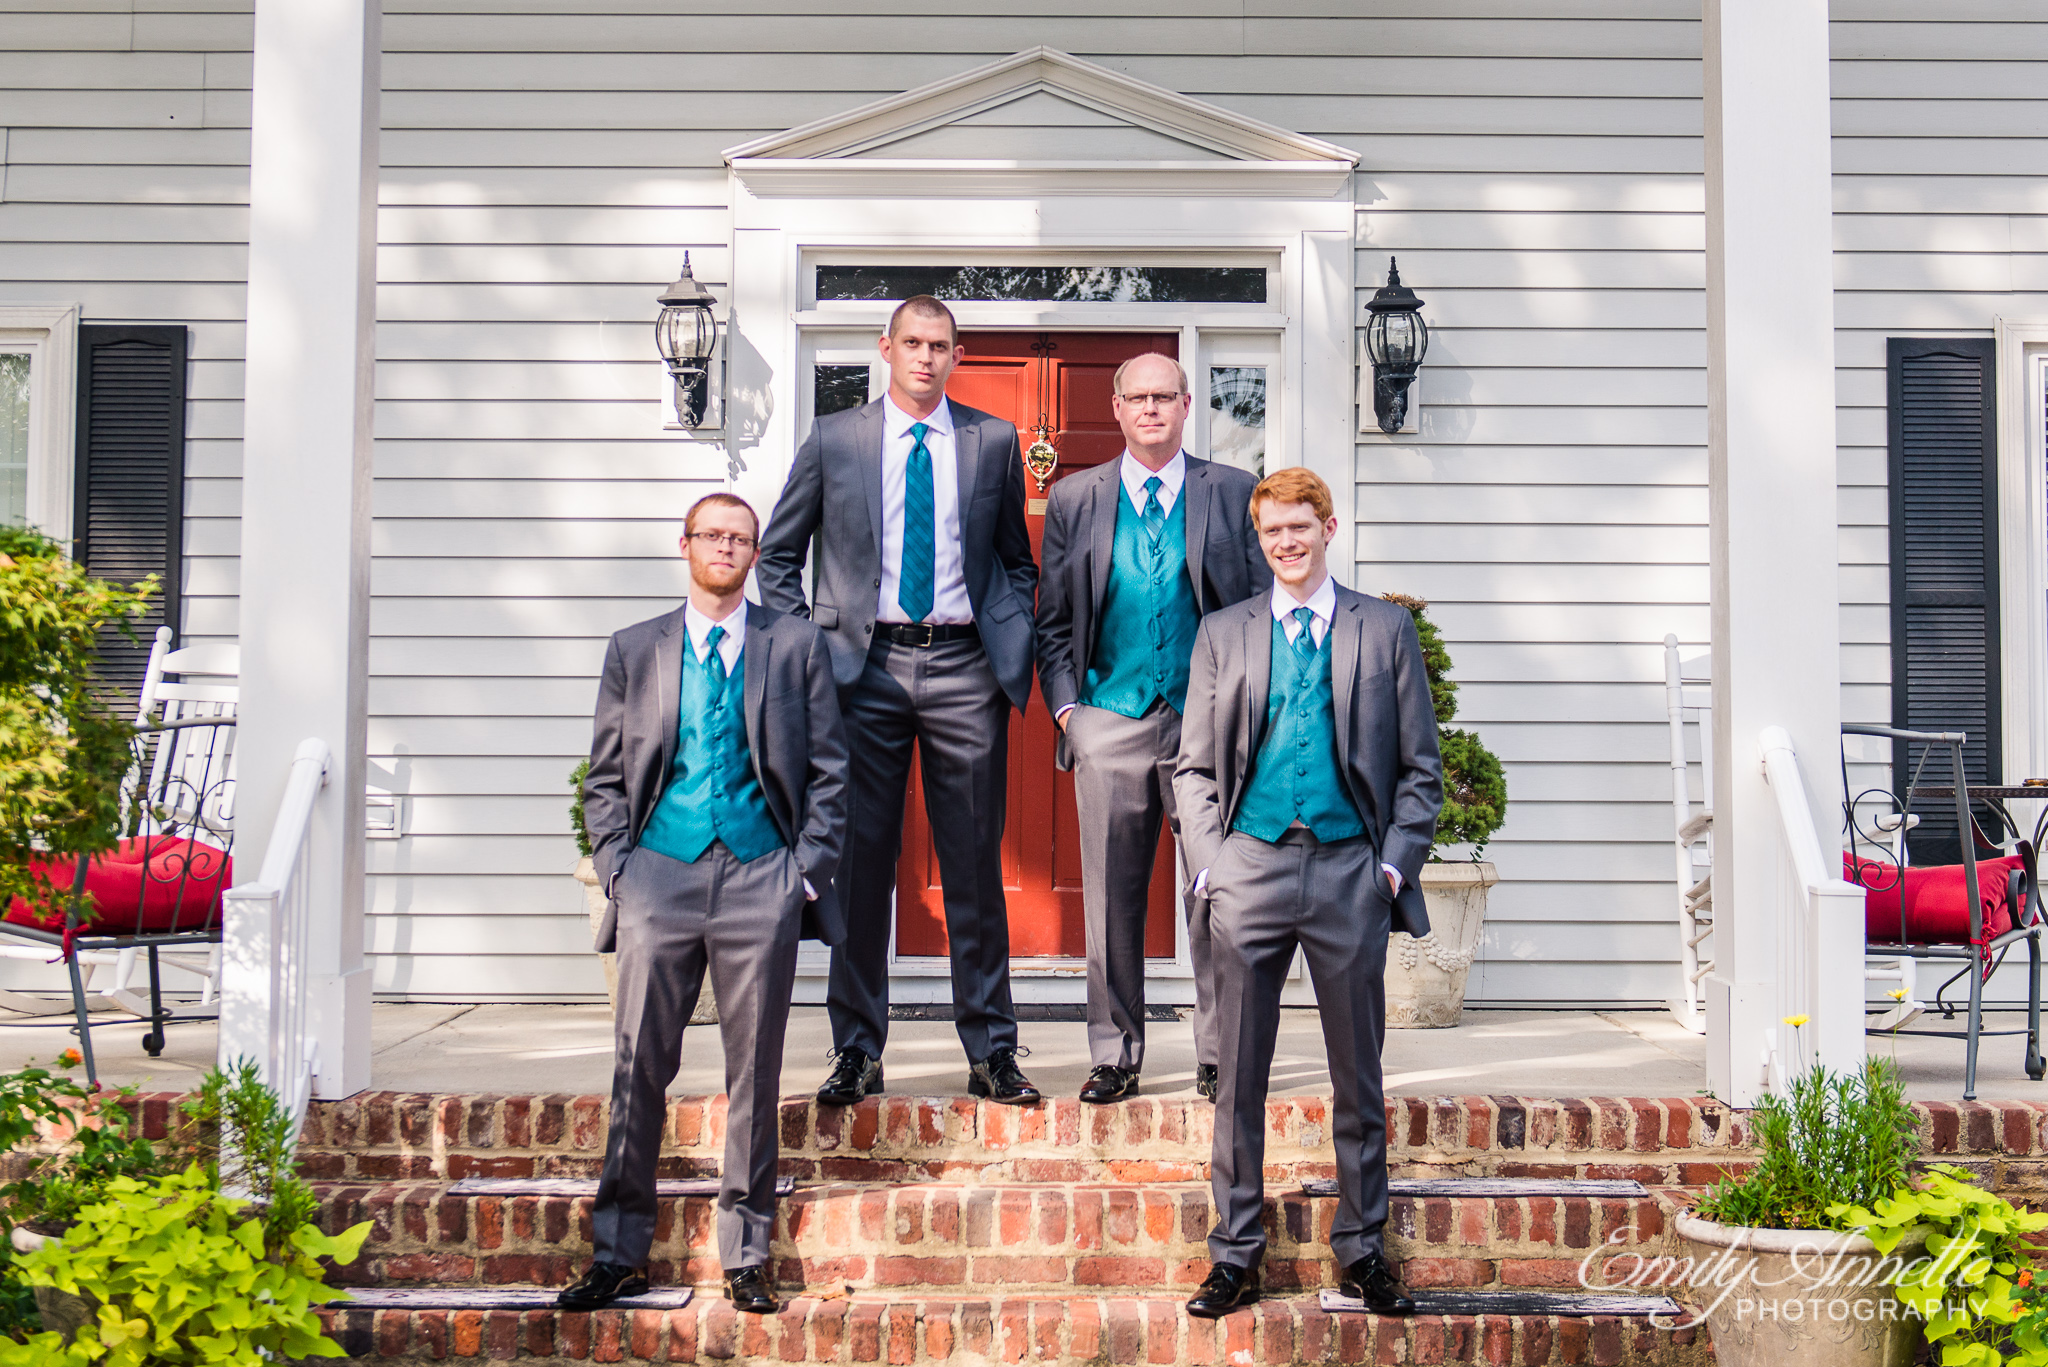 A groom and his groomsmen pose on the front porch of a historic house during a country wedding at Amber Grove near Richmond, Virginia